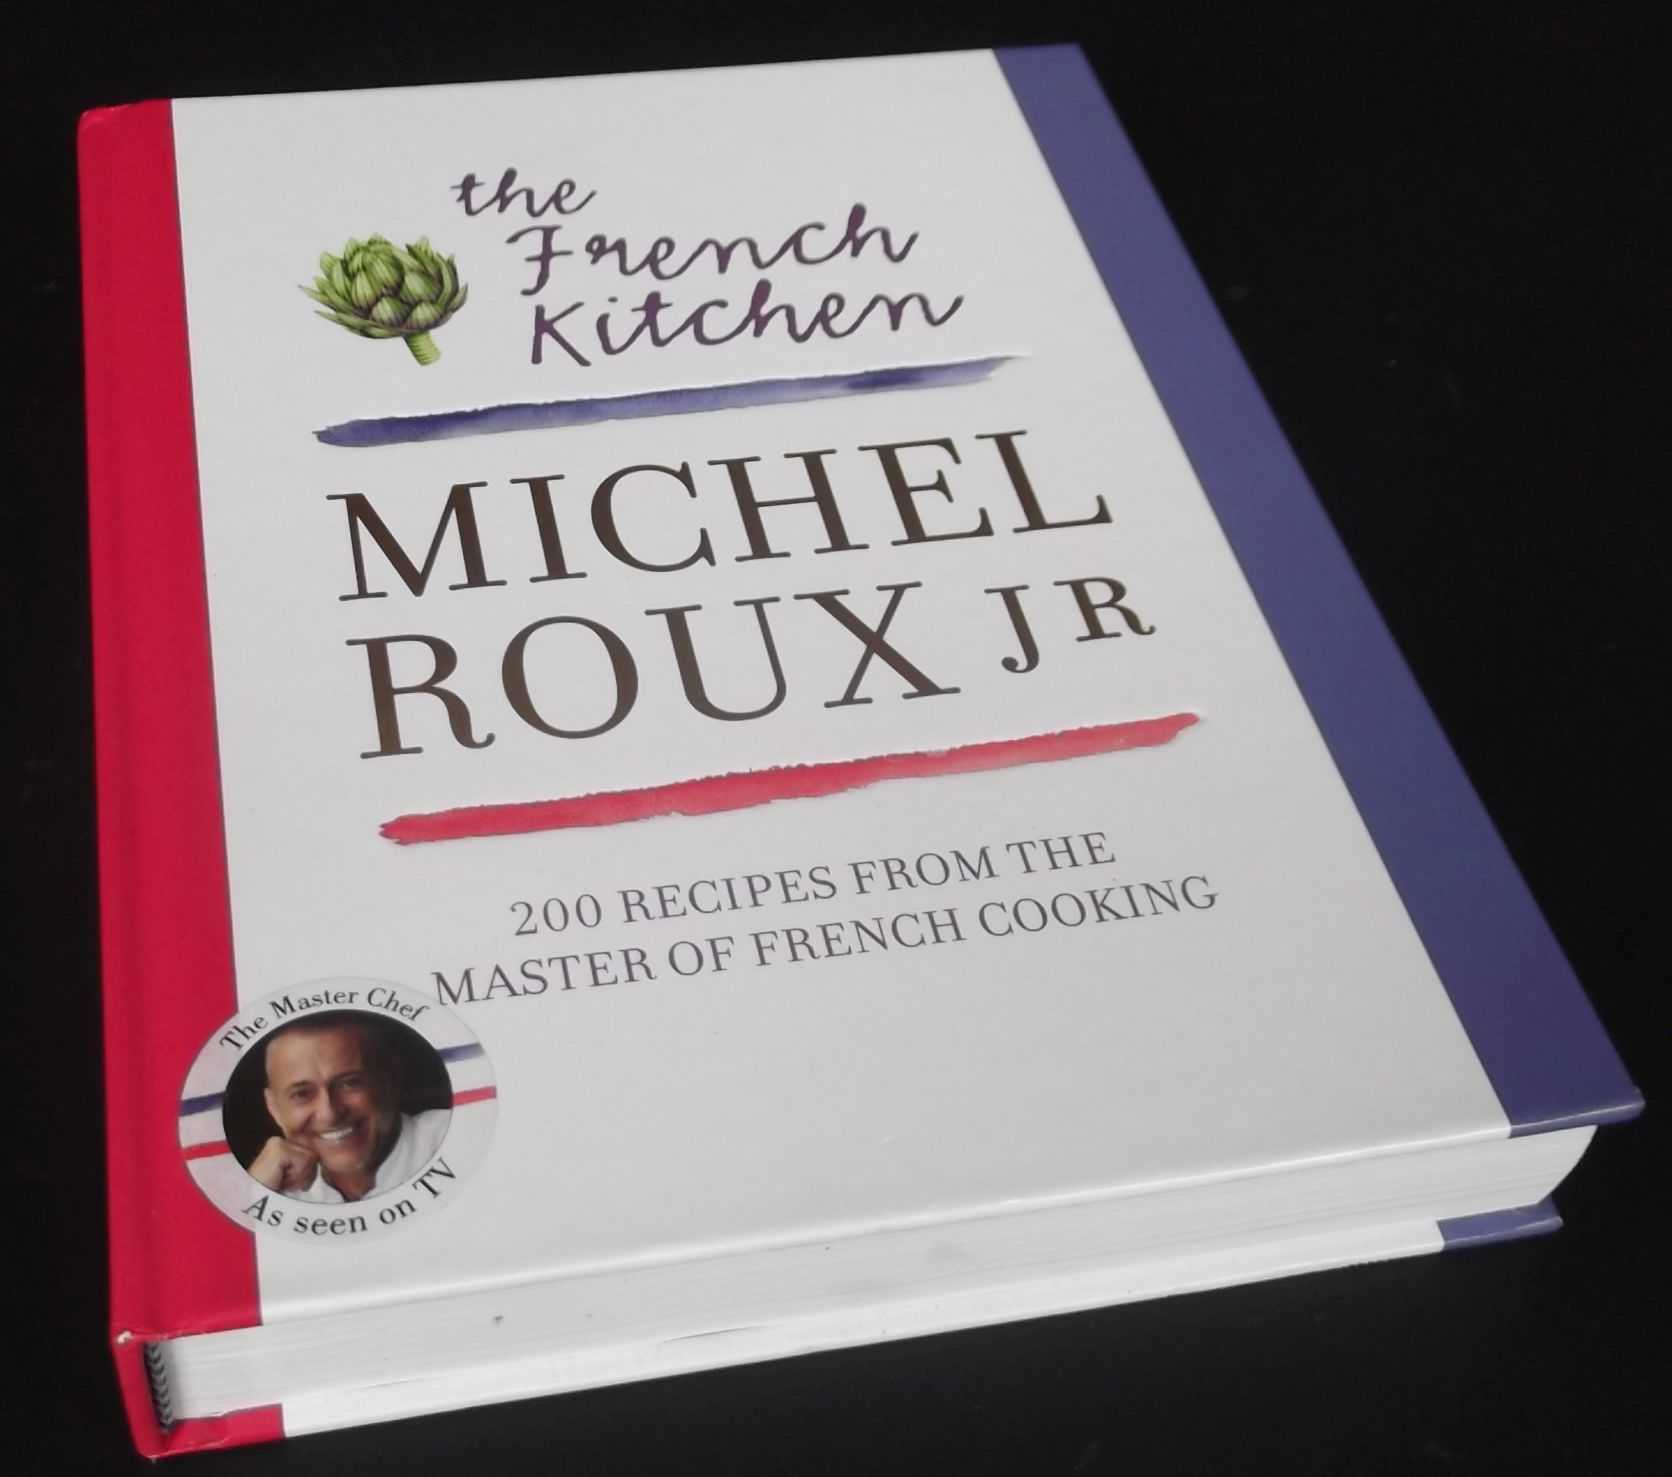 MICHEL ROUX JR - The French Kitchen: 200 Recipes from the Master of French Cooking